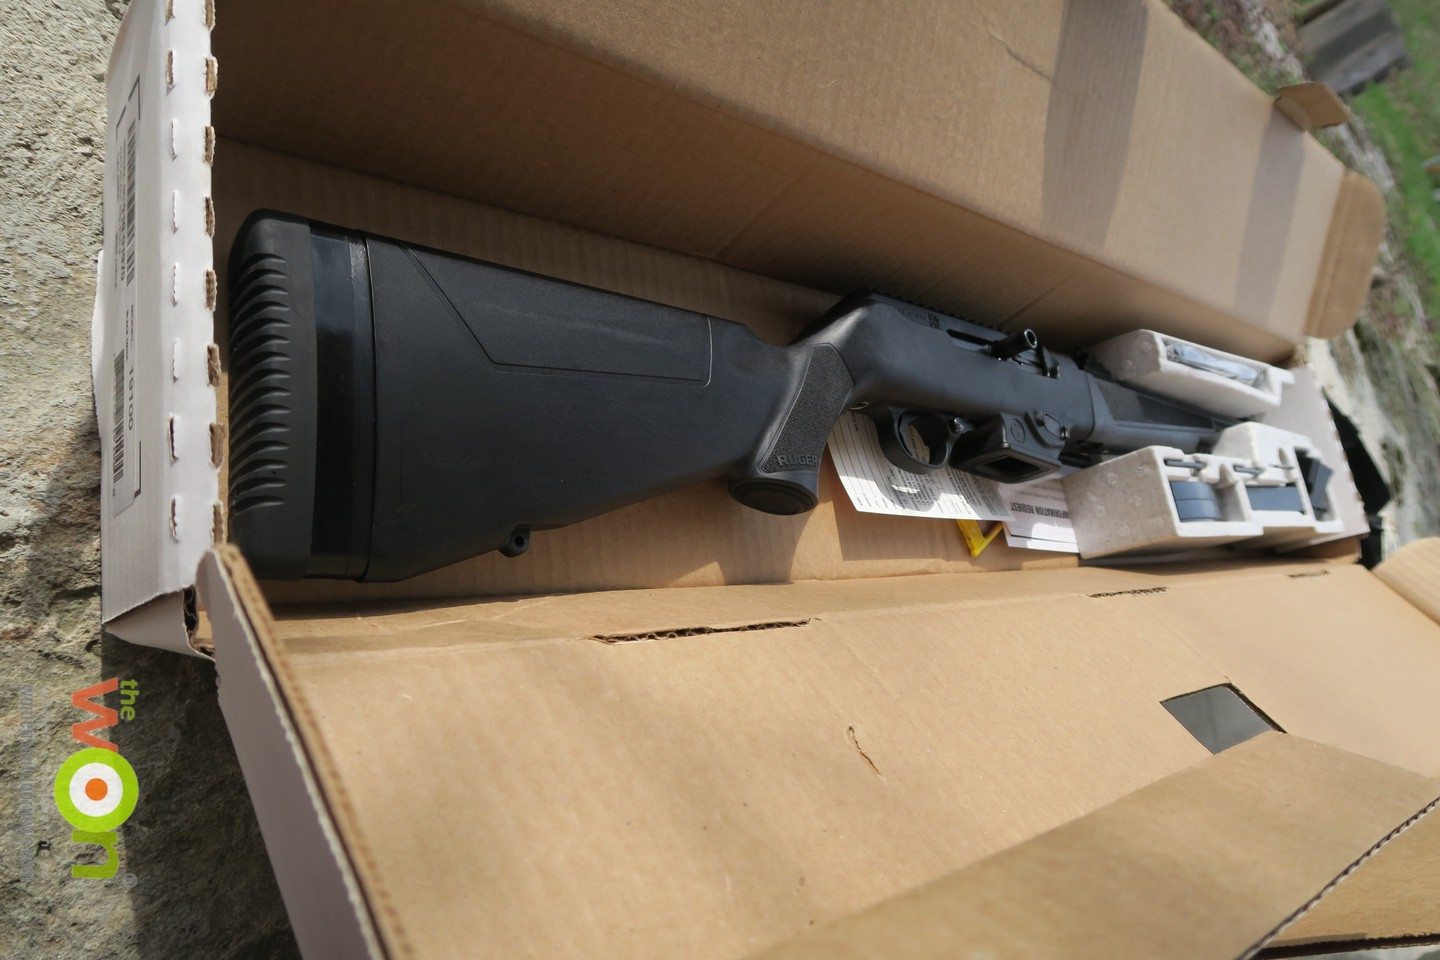 Ruger PC Carbine in box